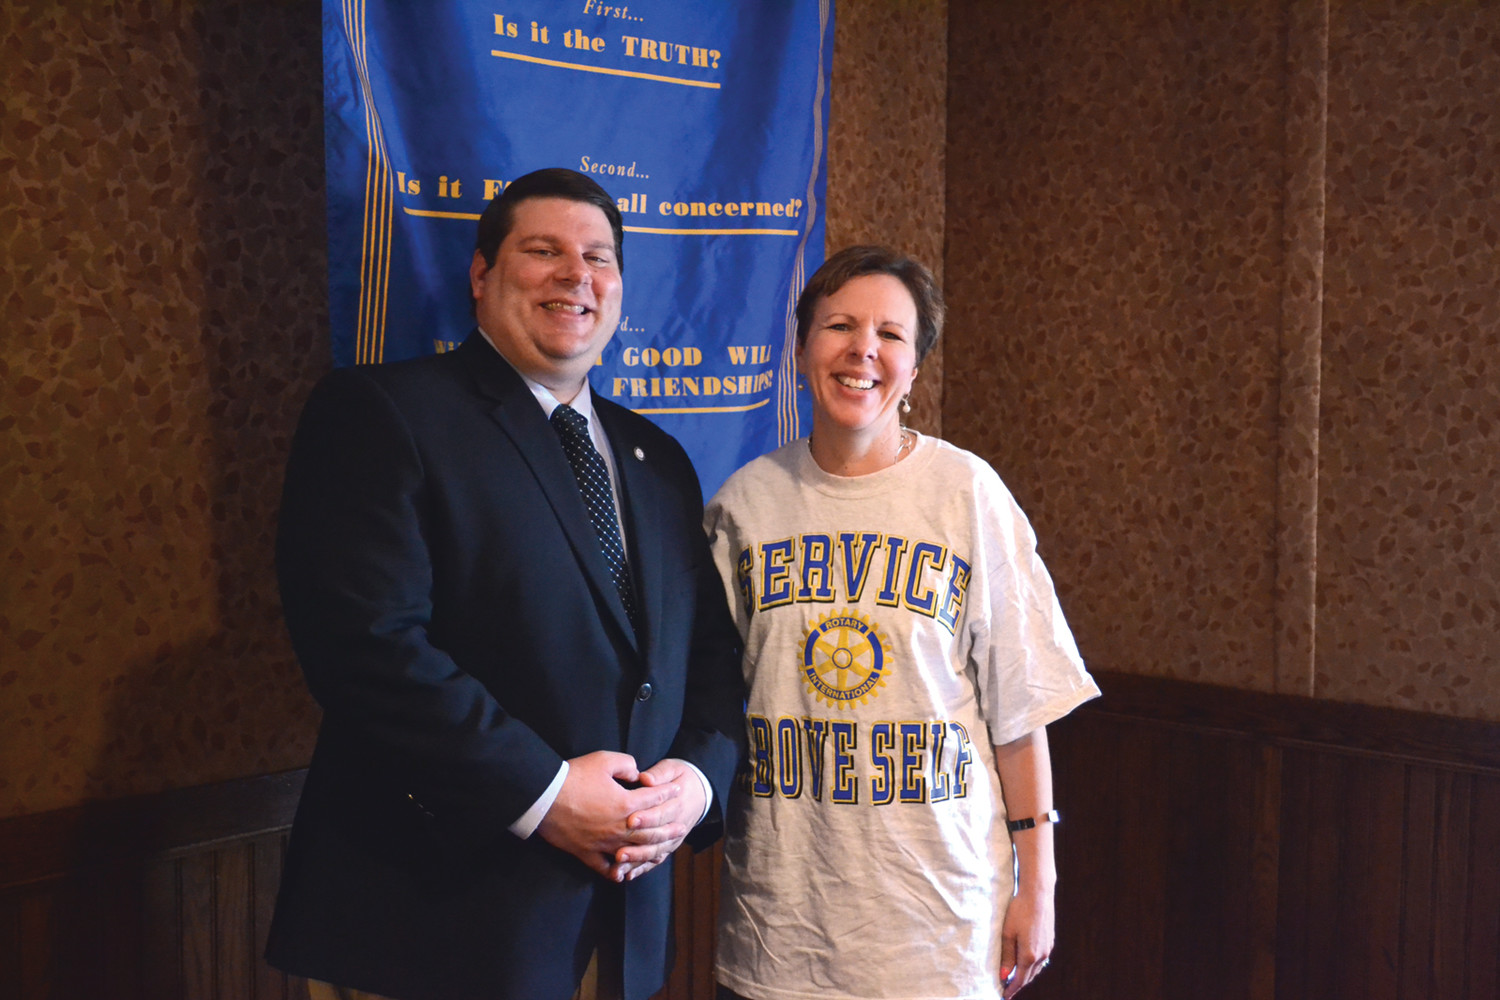 ECHOING THE CHAMBER: Ward 7 City Councilman and Senior Manager of the Eastern Region for the U.S. Chamber of Commerce Stephen McAllister gave an update on business-related issues at the Warwick Rotary's weekly lunch, seen here with Rotary president Donna Caccia.